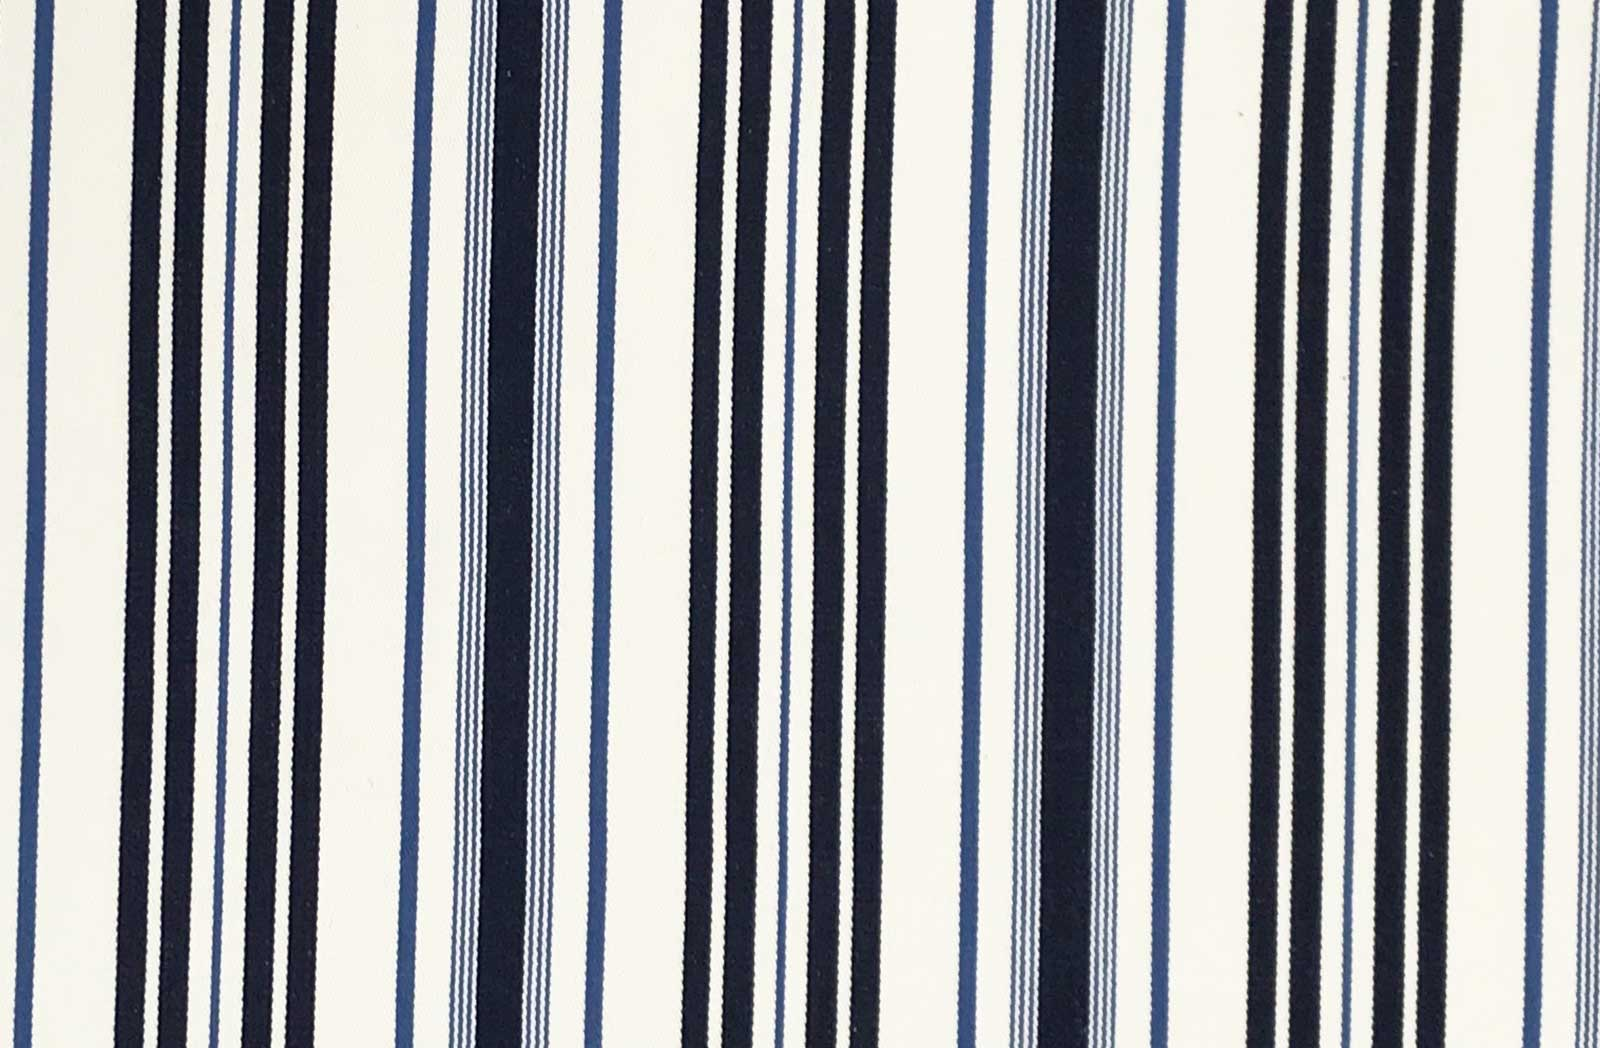 white, airforce blue and navy- Striped Fabrics | Stripe Cotton Fabrics | Striped Curtain Fabrics | Upholstery Fabrics